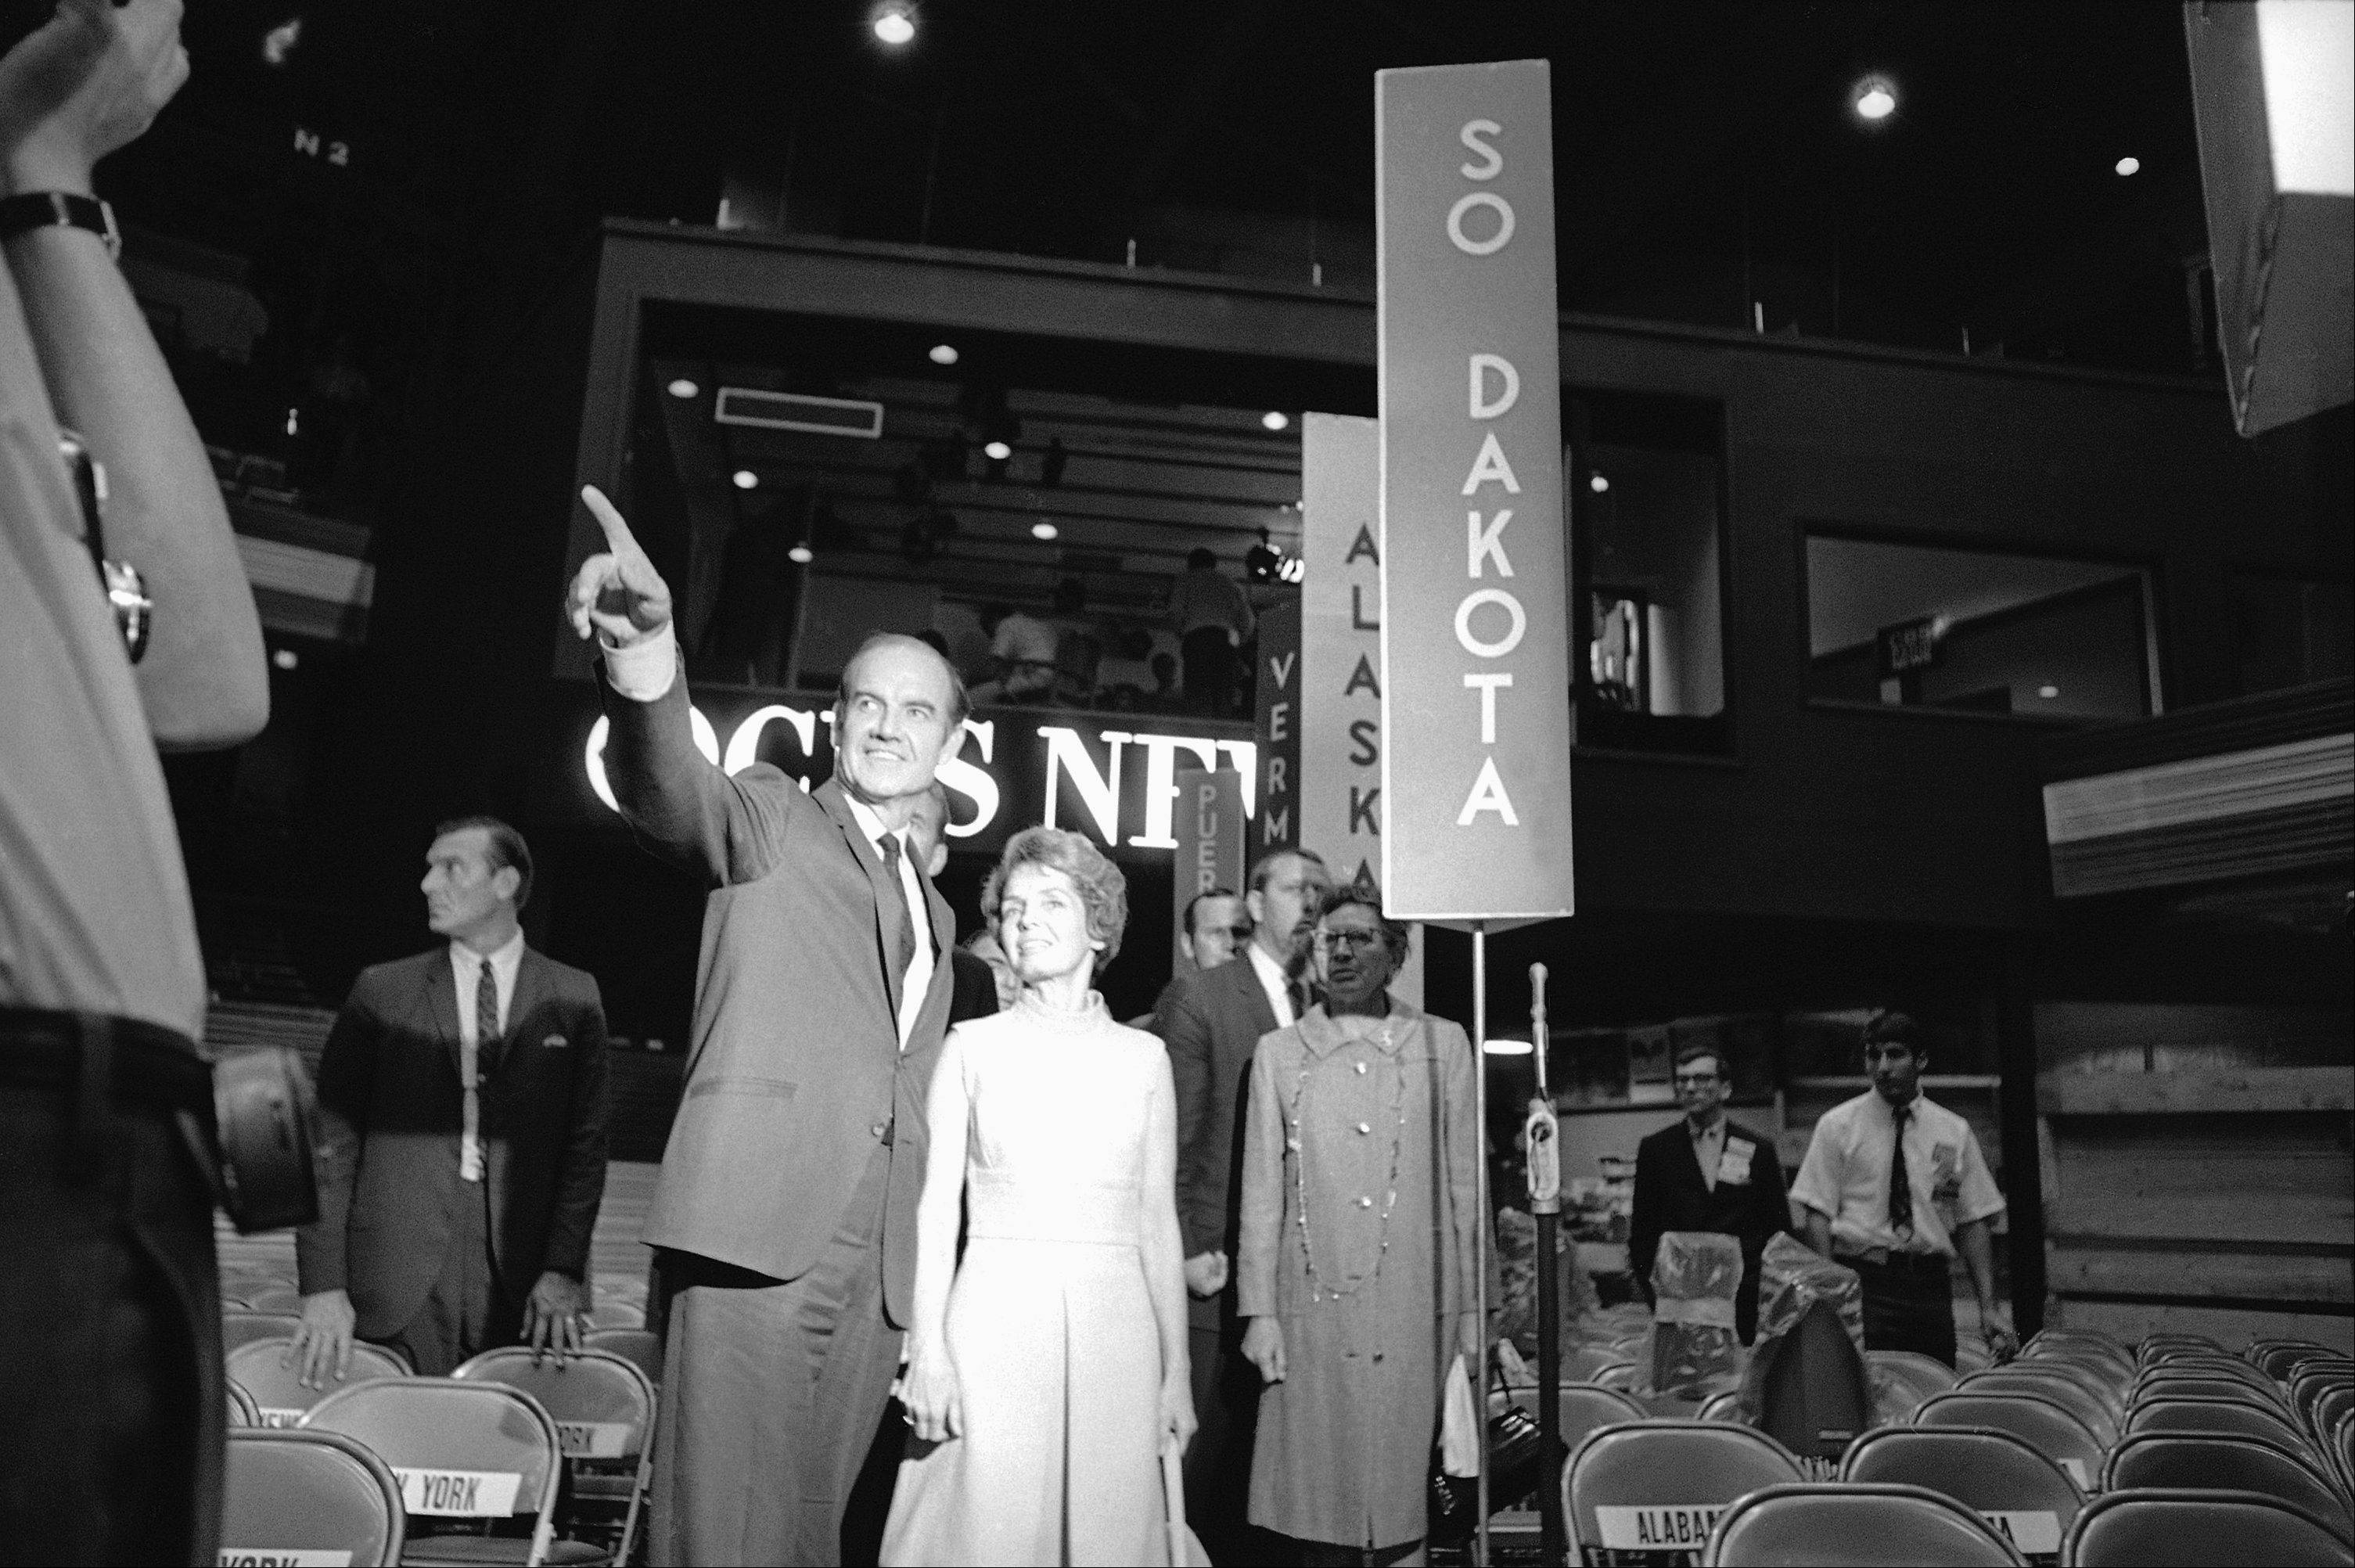 Sen. George McGovern of South Dakota pays a visit with his wife to the floor of the International Amphitheatre in Chicago, August 25, 1968.